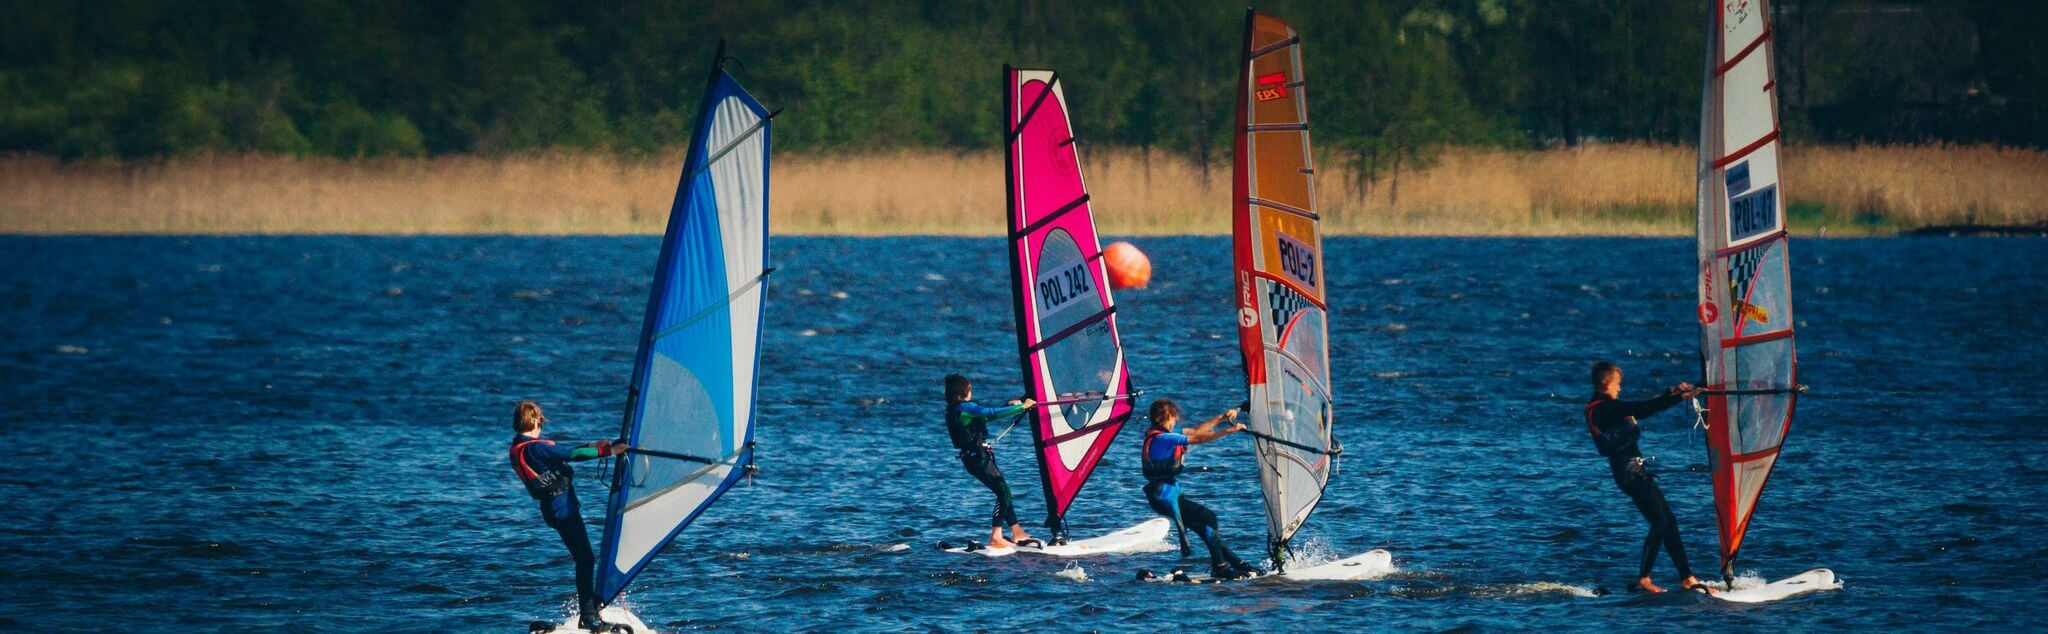 Windsurfing in Norfolk